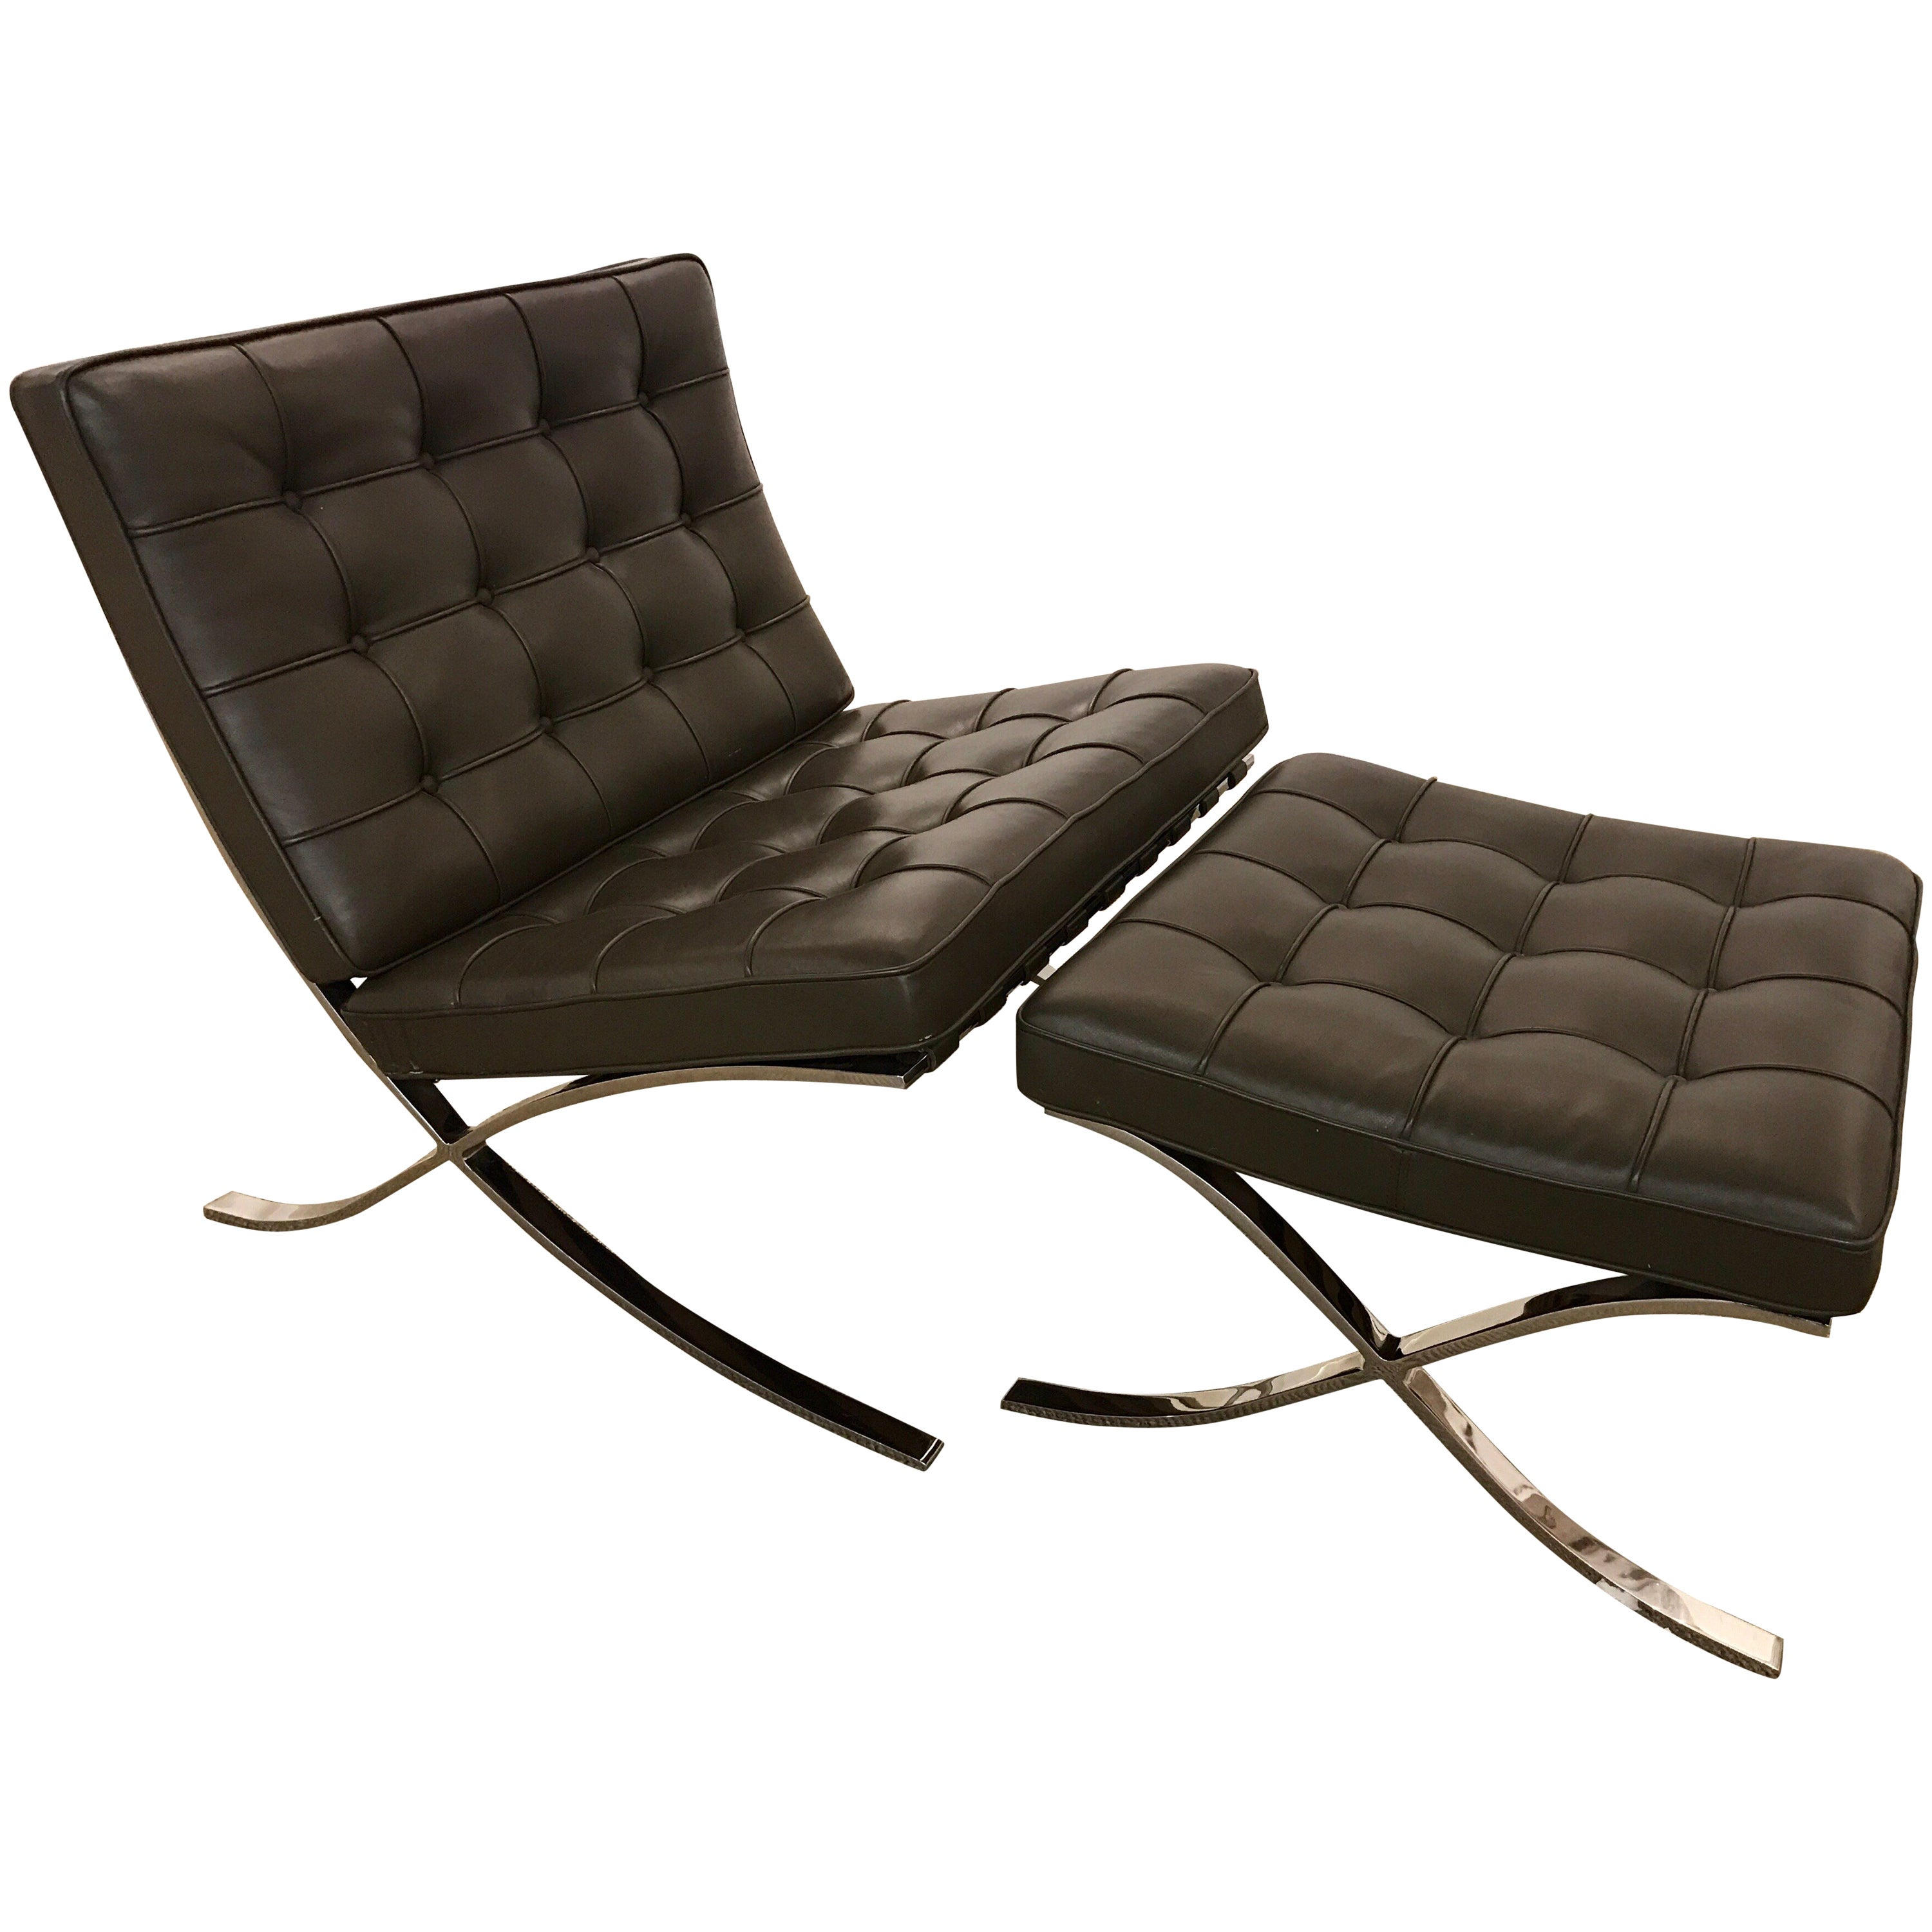 Barcelona Sessel Knoll Signed Knoll Barcelona Olive Brown Leather Chair Ottoman Mies Van Der Rohe